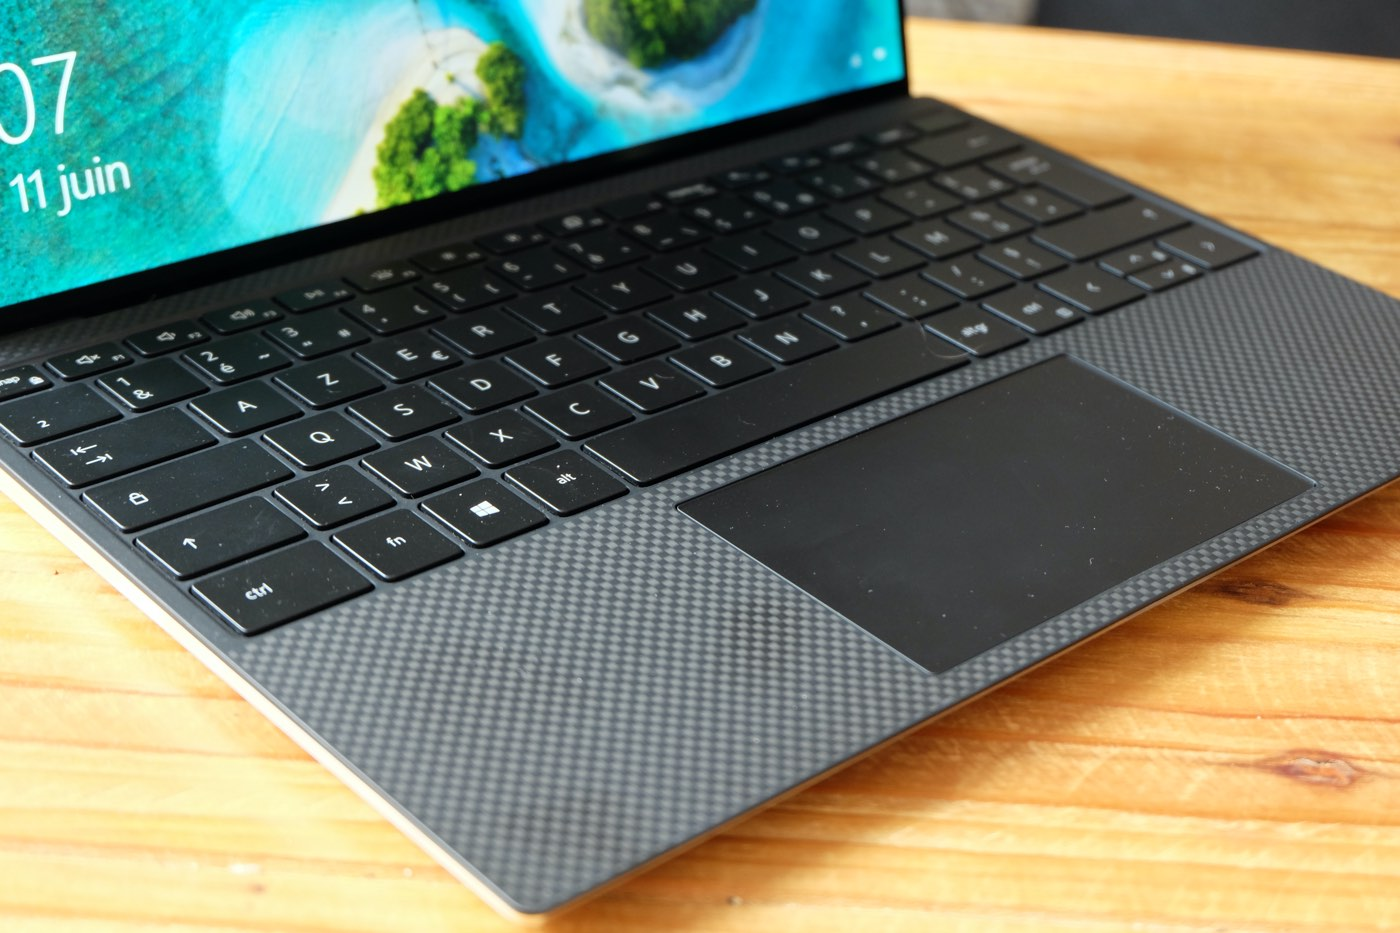 test dell xps 13 2020 4K trackpad